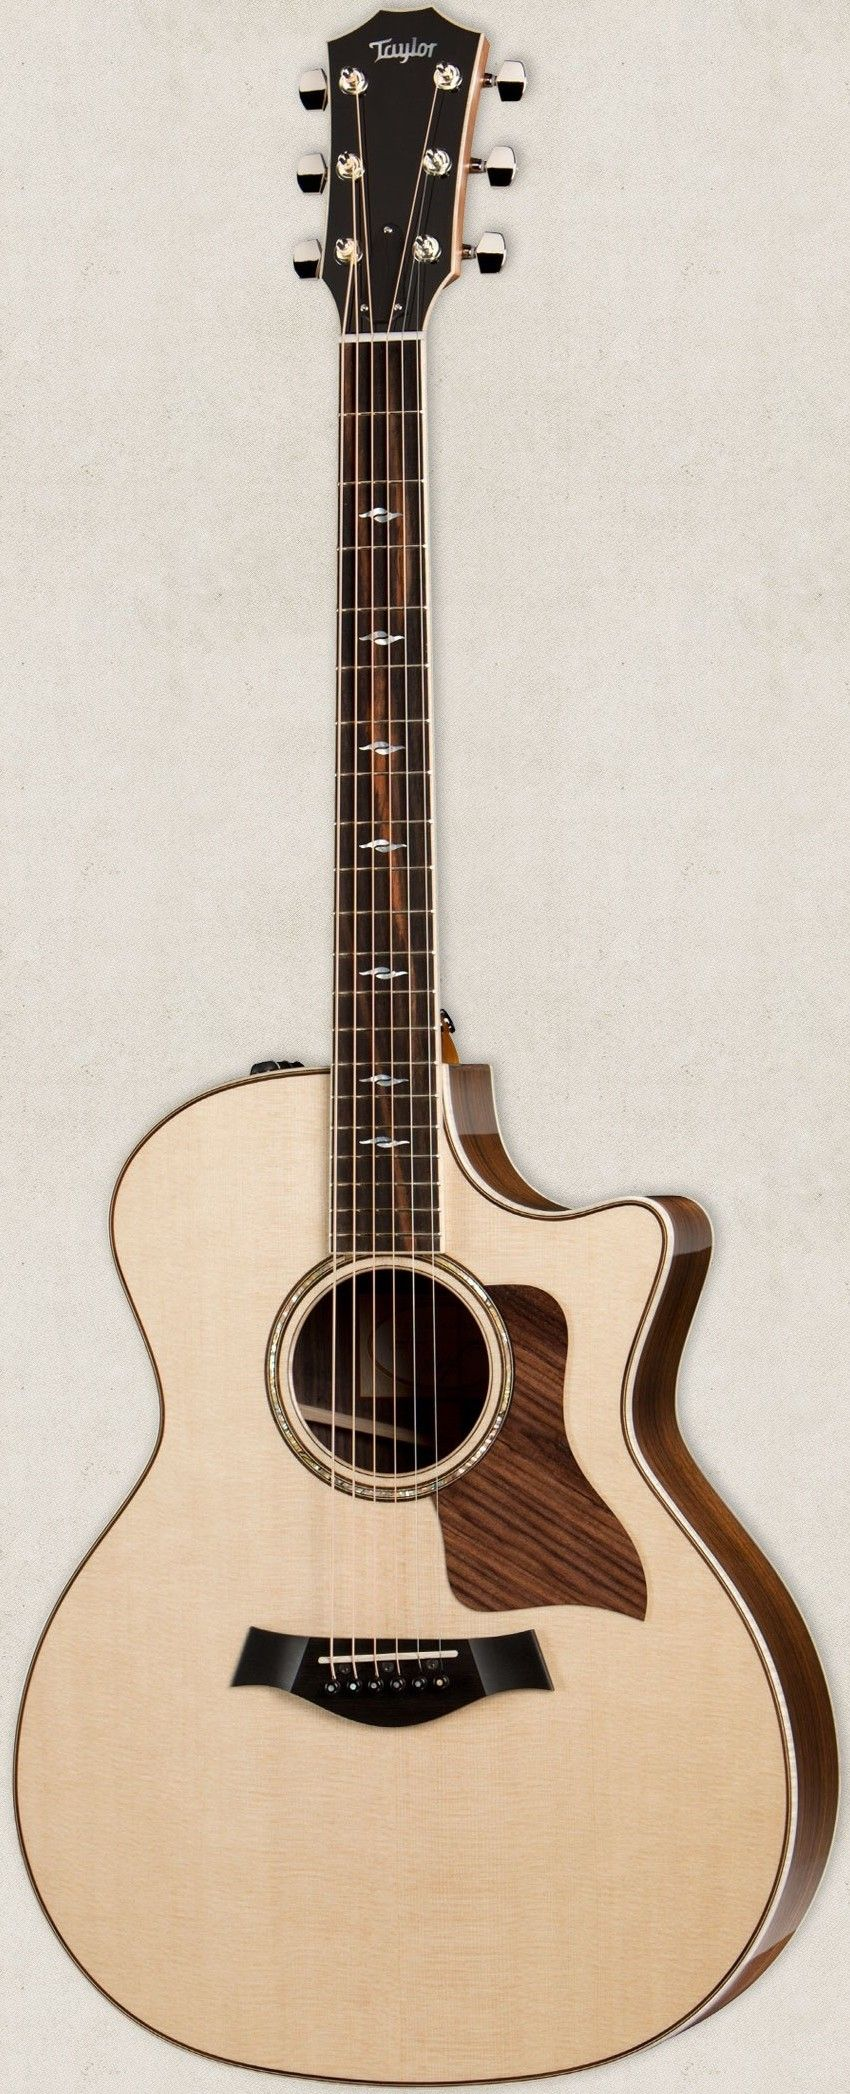 Taylor 2014 814ce Electro Acoustic Guitar With Es 2 Electro Acoustic Guitar Acoustic Guitar Taylor Guitars Acoustic